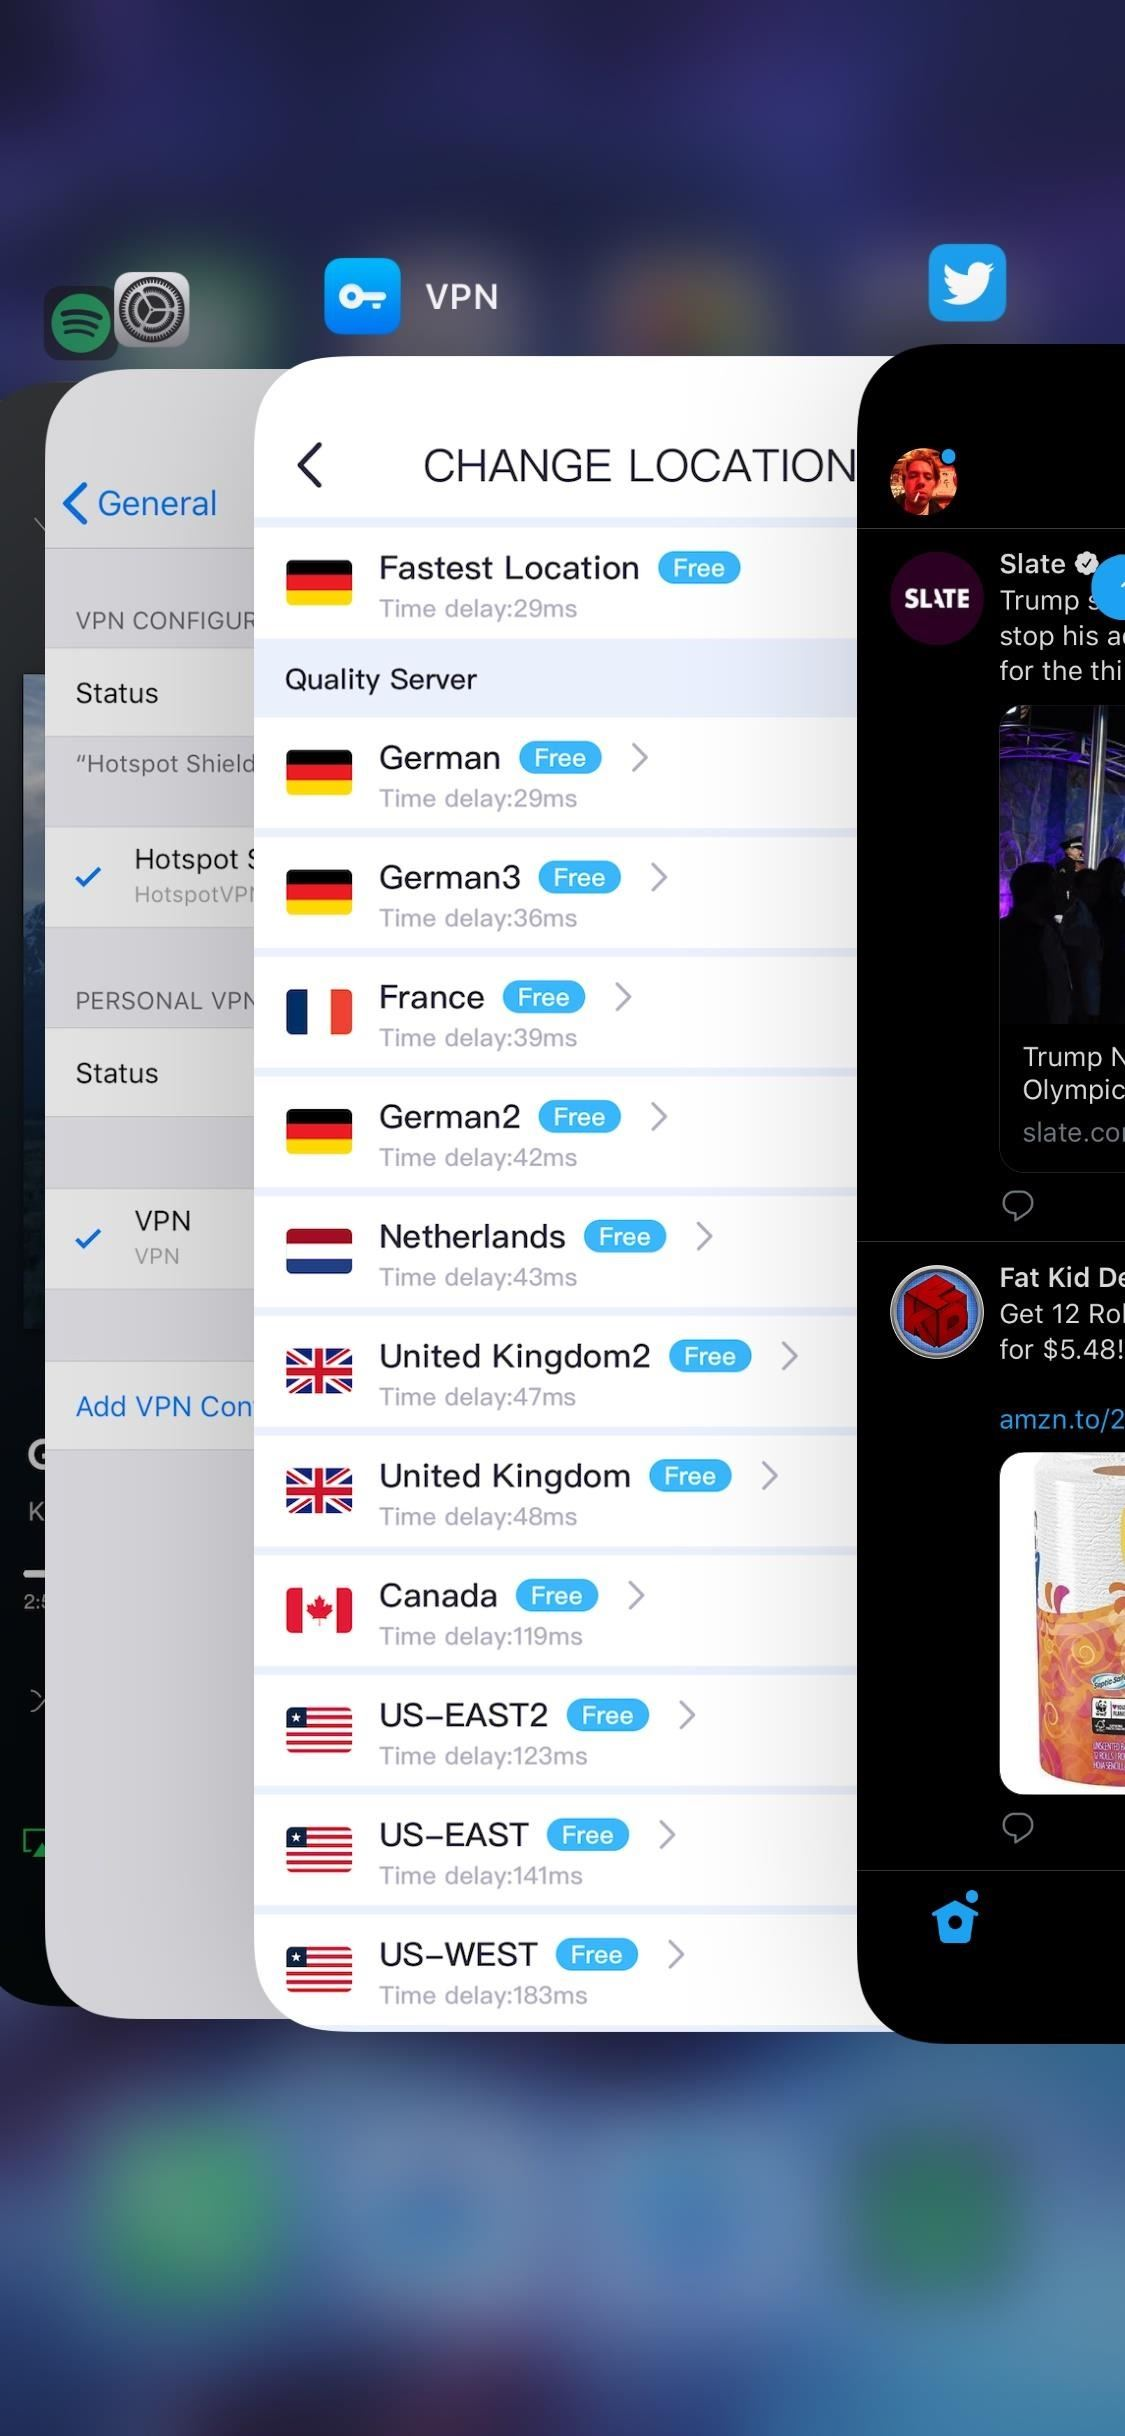 How to Fix VPN Issues on iPhone to Ensure a More Private Internet Experience